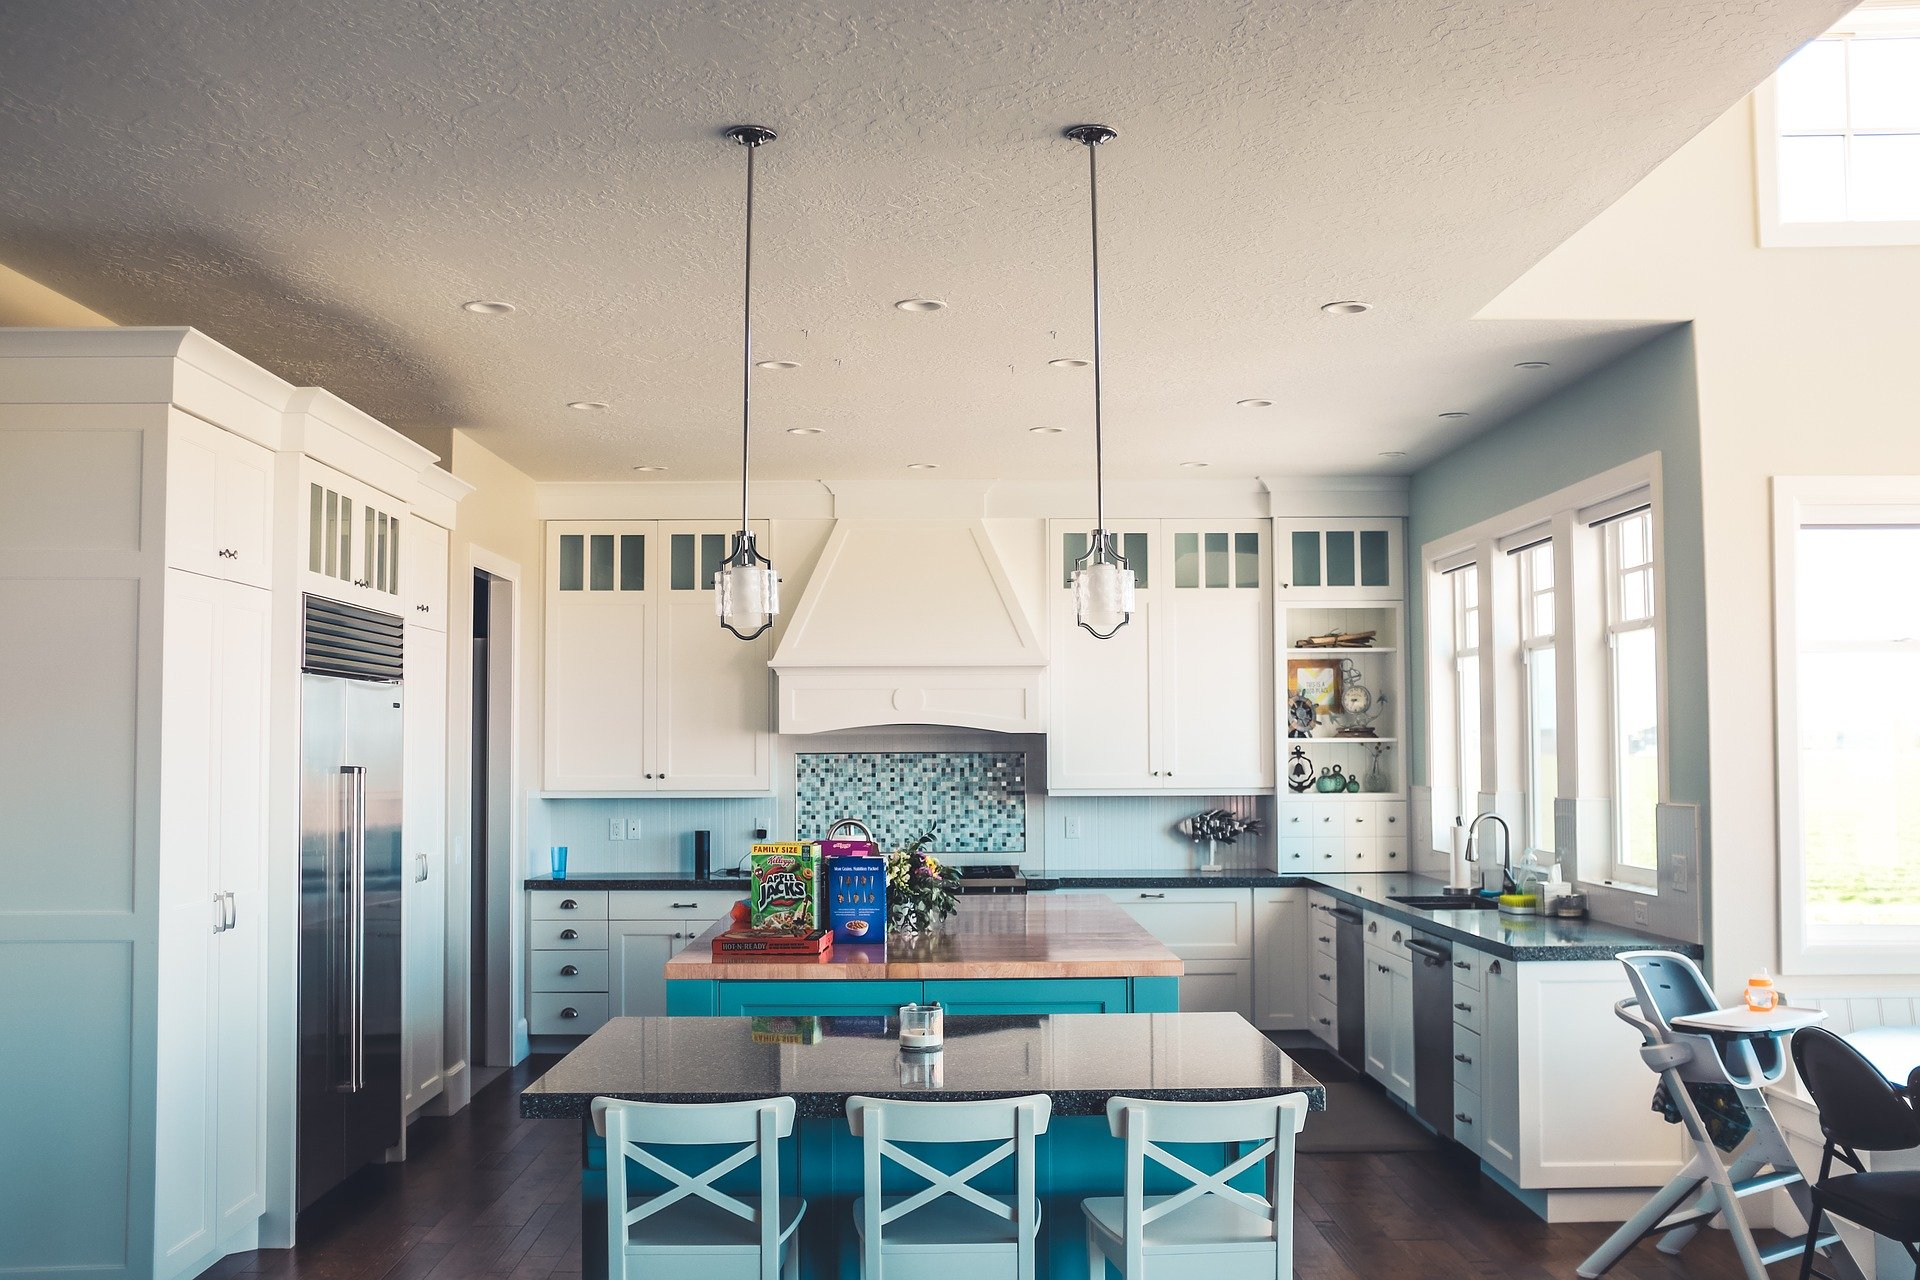 How To Design You Own Bespoke Kitchen Online Techiestuffs